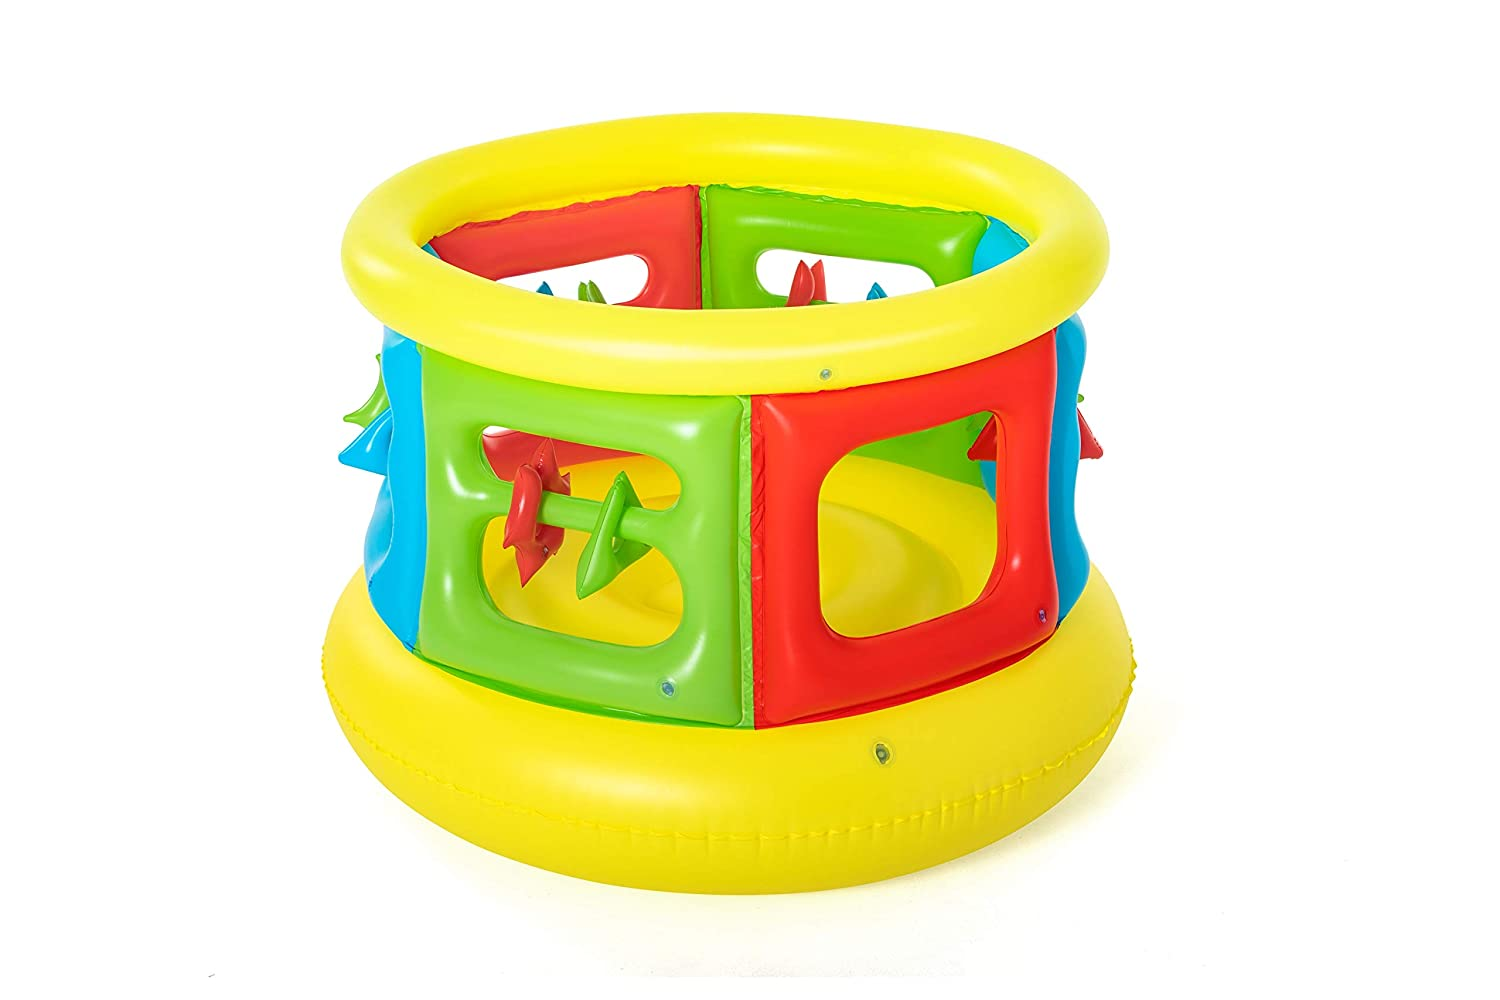 Bestway 52056 - Parque Infantil Hinchable Jumping Tube Gym